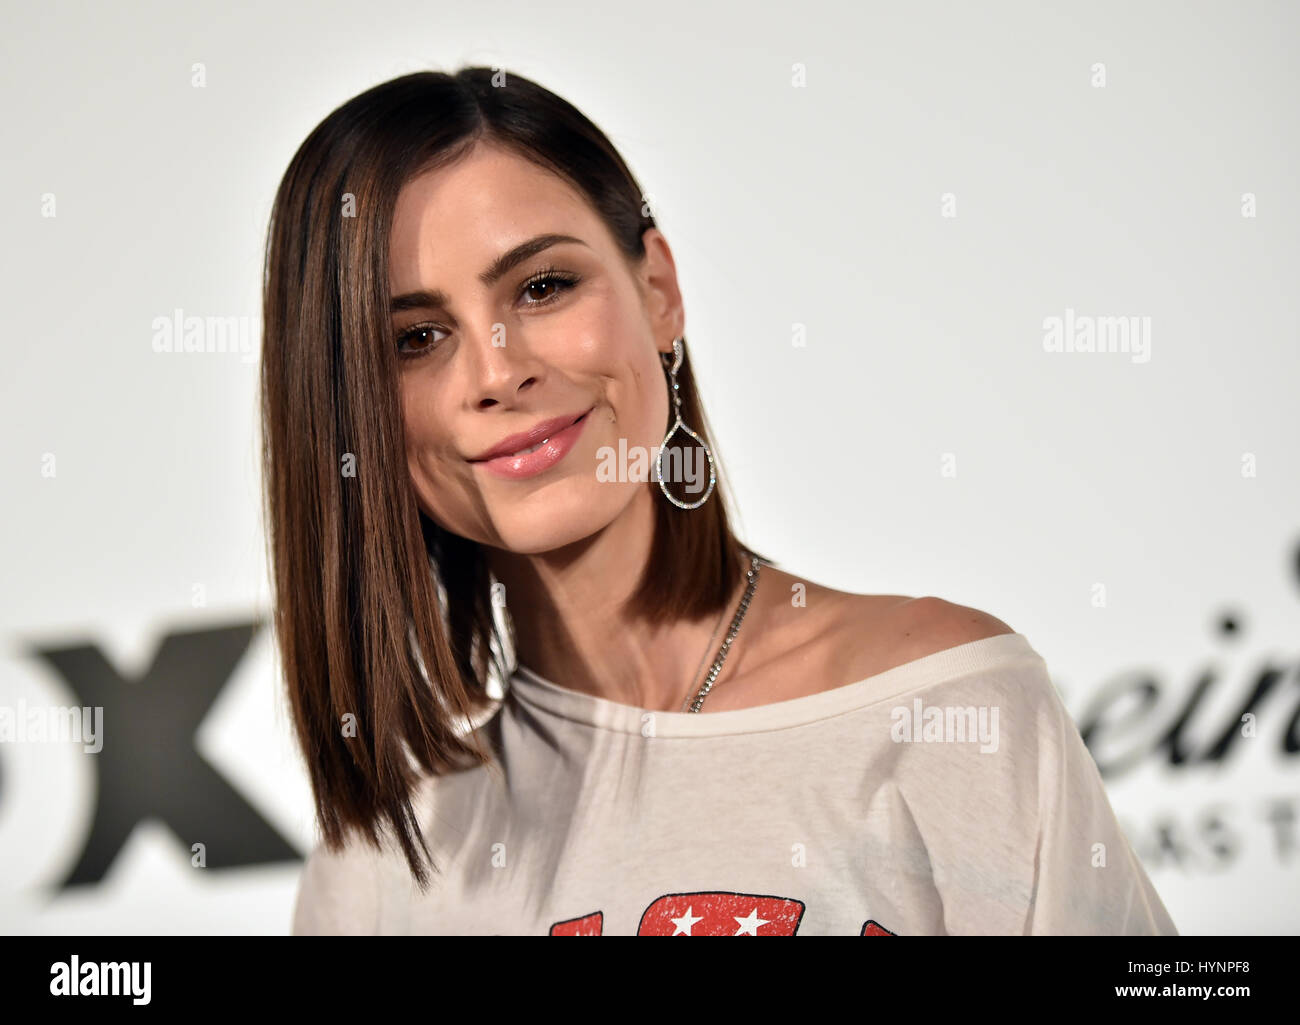 Berlin Germany 05th Apr 2017 German Singer Lena Meyer Landrut